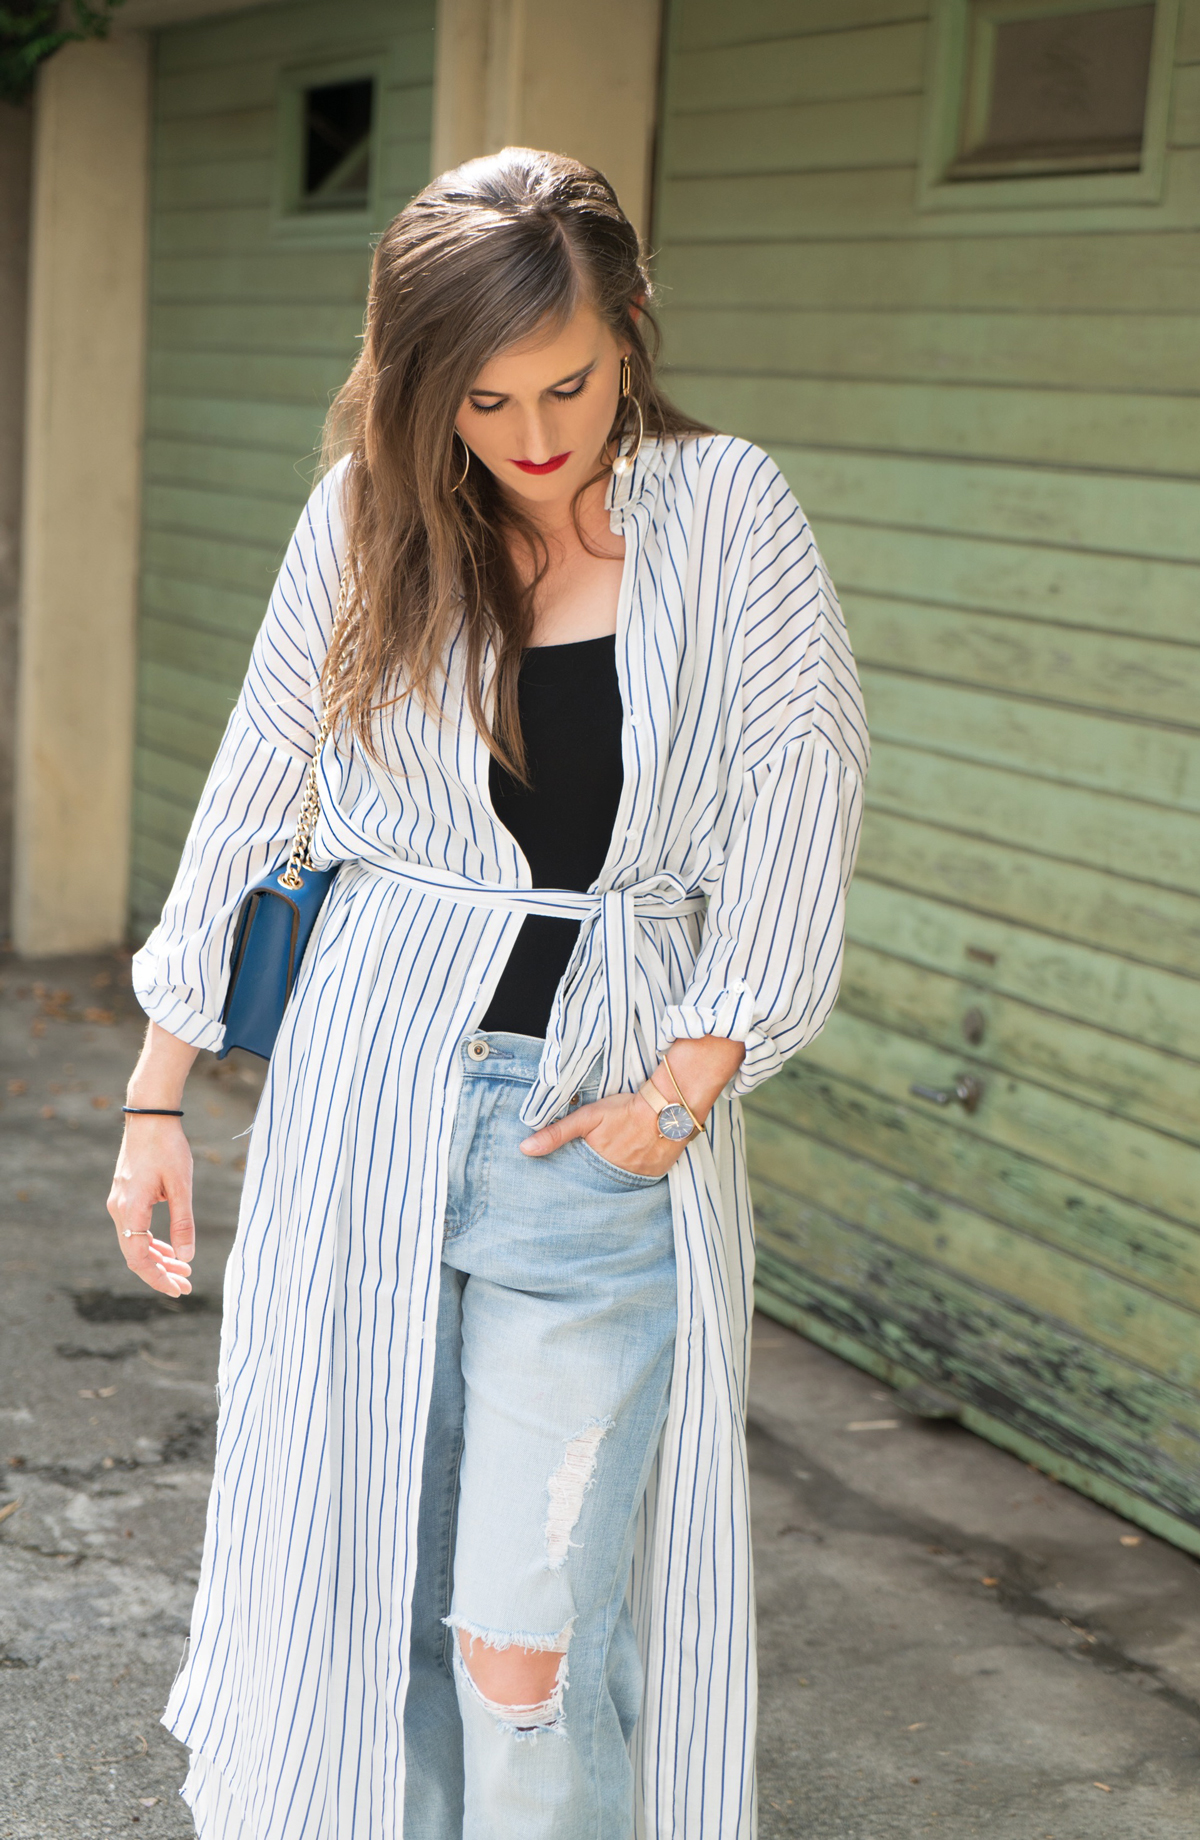 Fashionblogger, Andrea Steiner from Strawberries 'n' Champagne is wearing a long striped blouse from Zara with ripped jeans from Uniqlo and a black basic top from H&M. A Moschino bag and shoes from Hong Kong. Make up is Yves Saint Lauren and Mac Cosmetics.